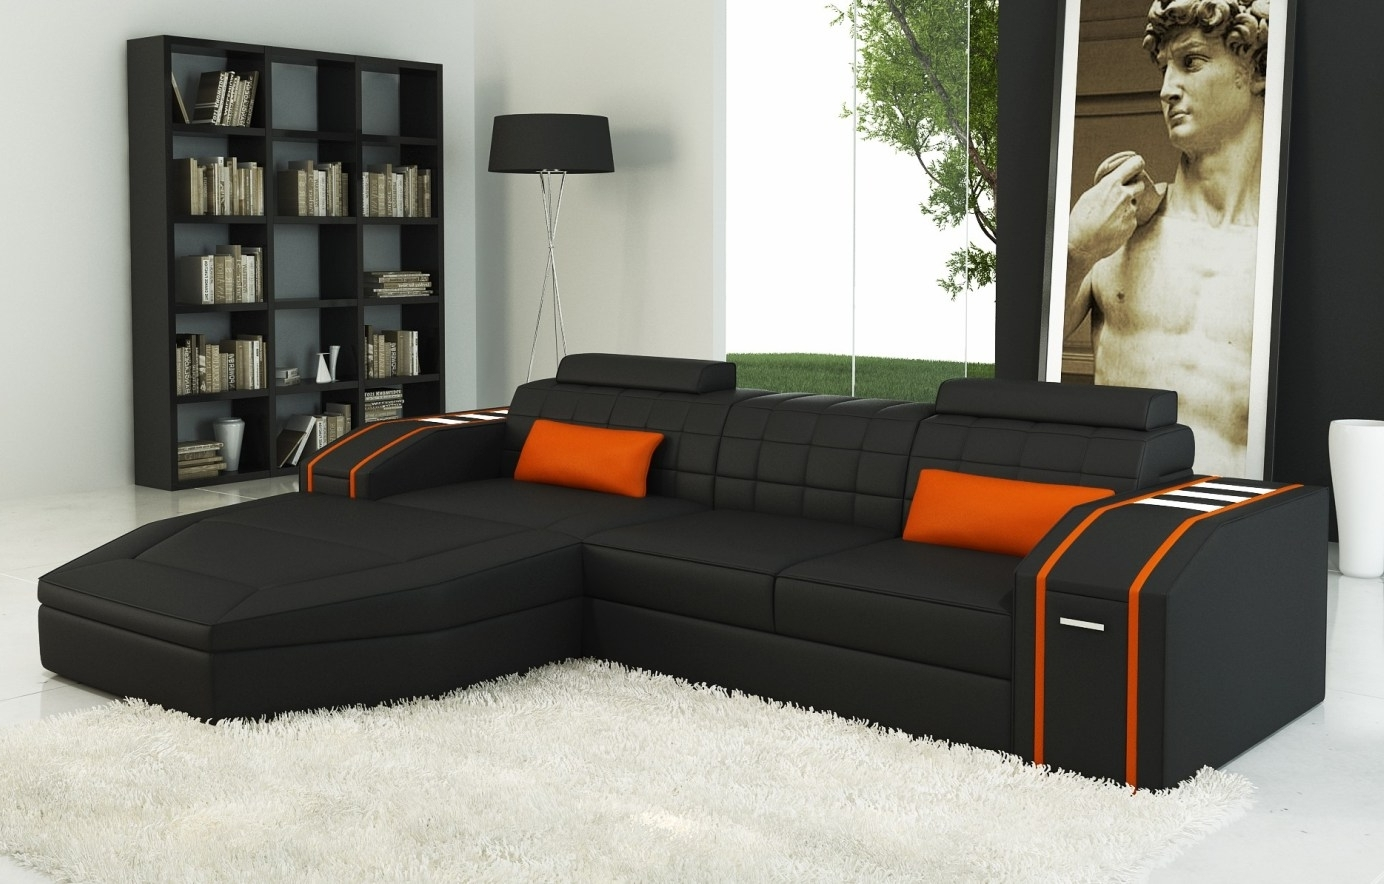 Valdosta Ga Sectional Sofas With Regard To Latest Furniture : Cool Sofas For Sale Excellent Design Ideas 19 Bedroom (View 14 of 15)